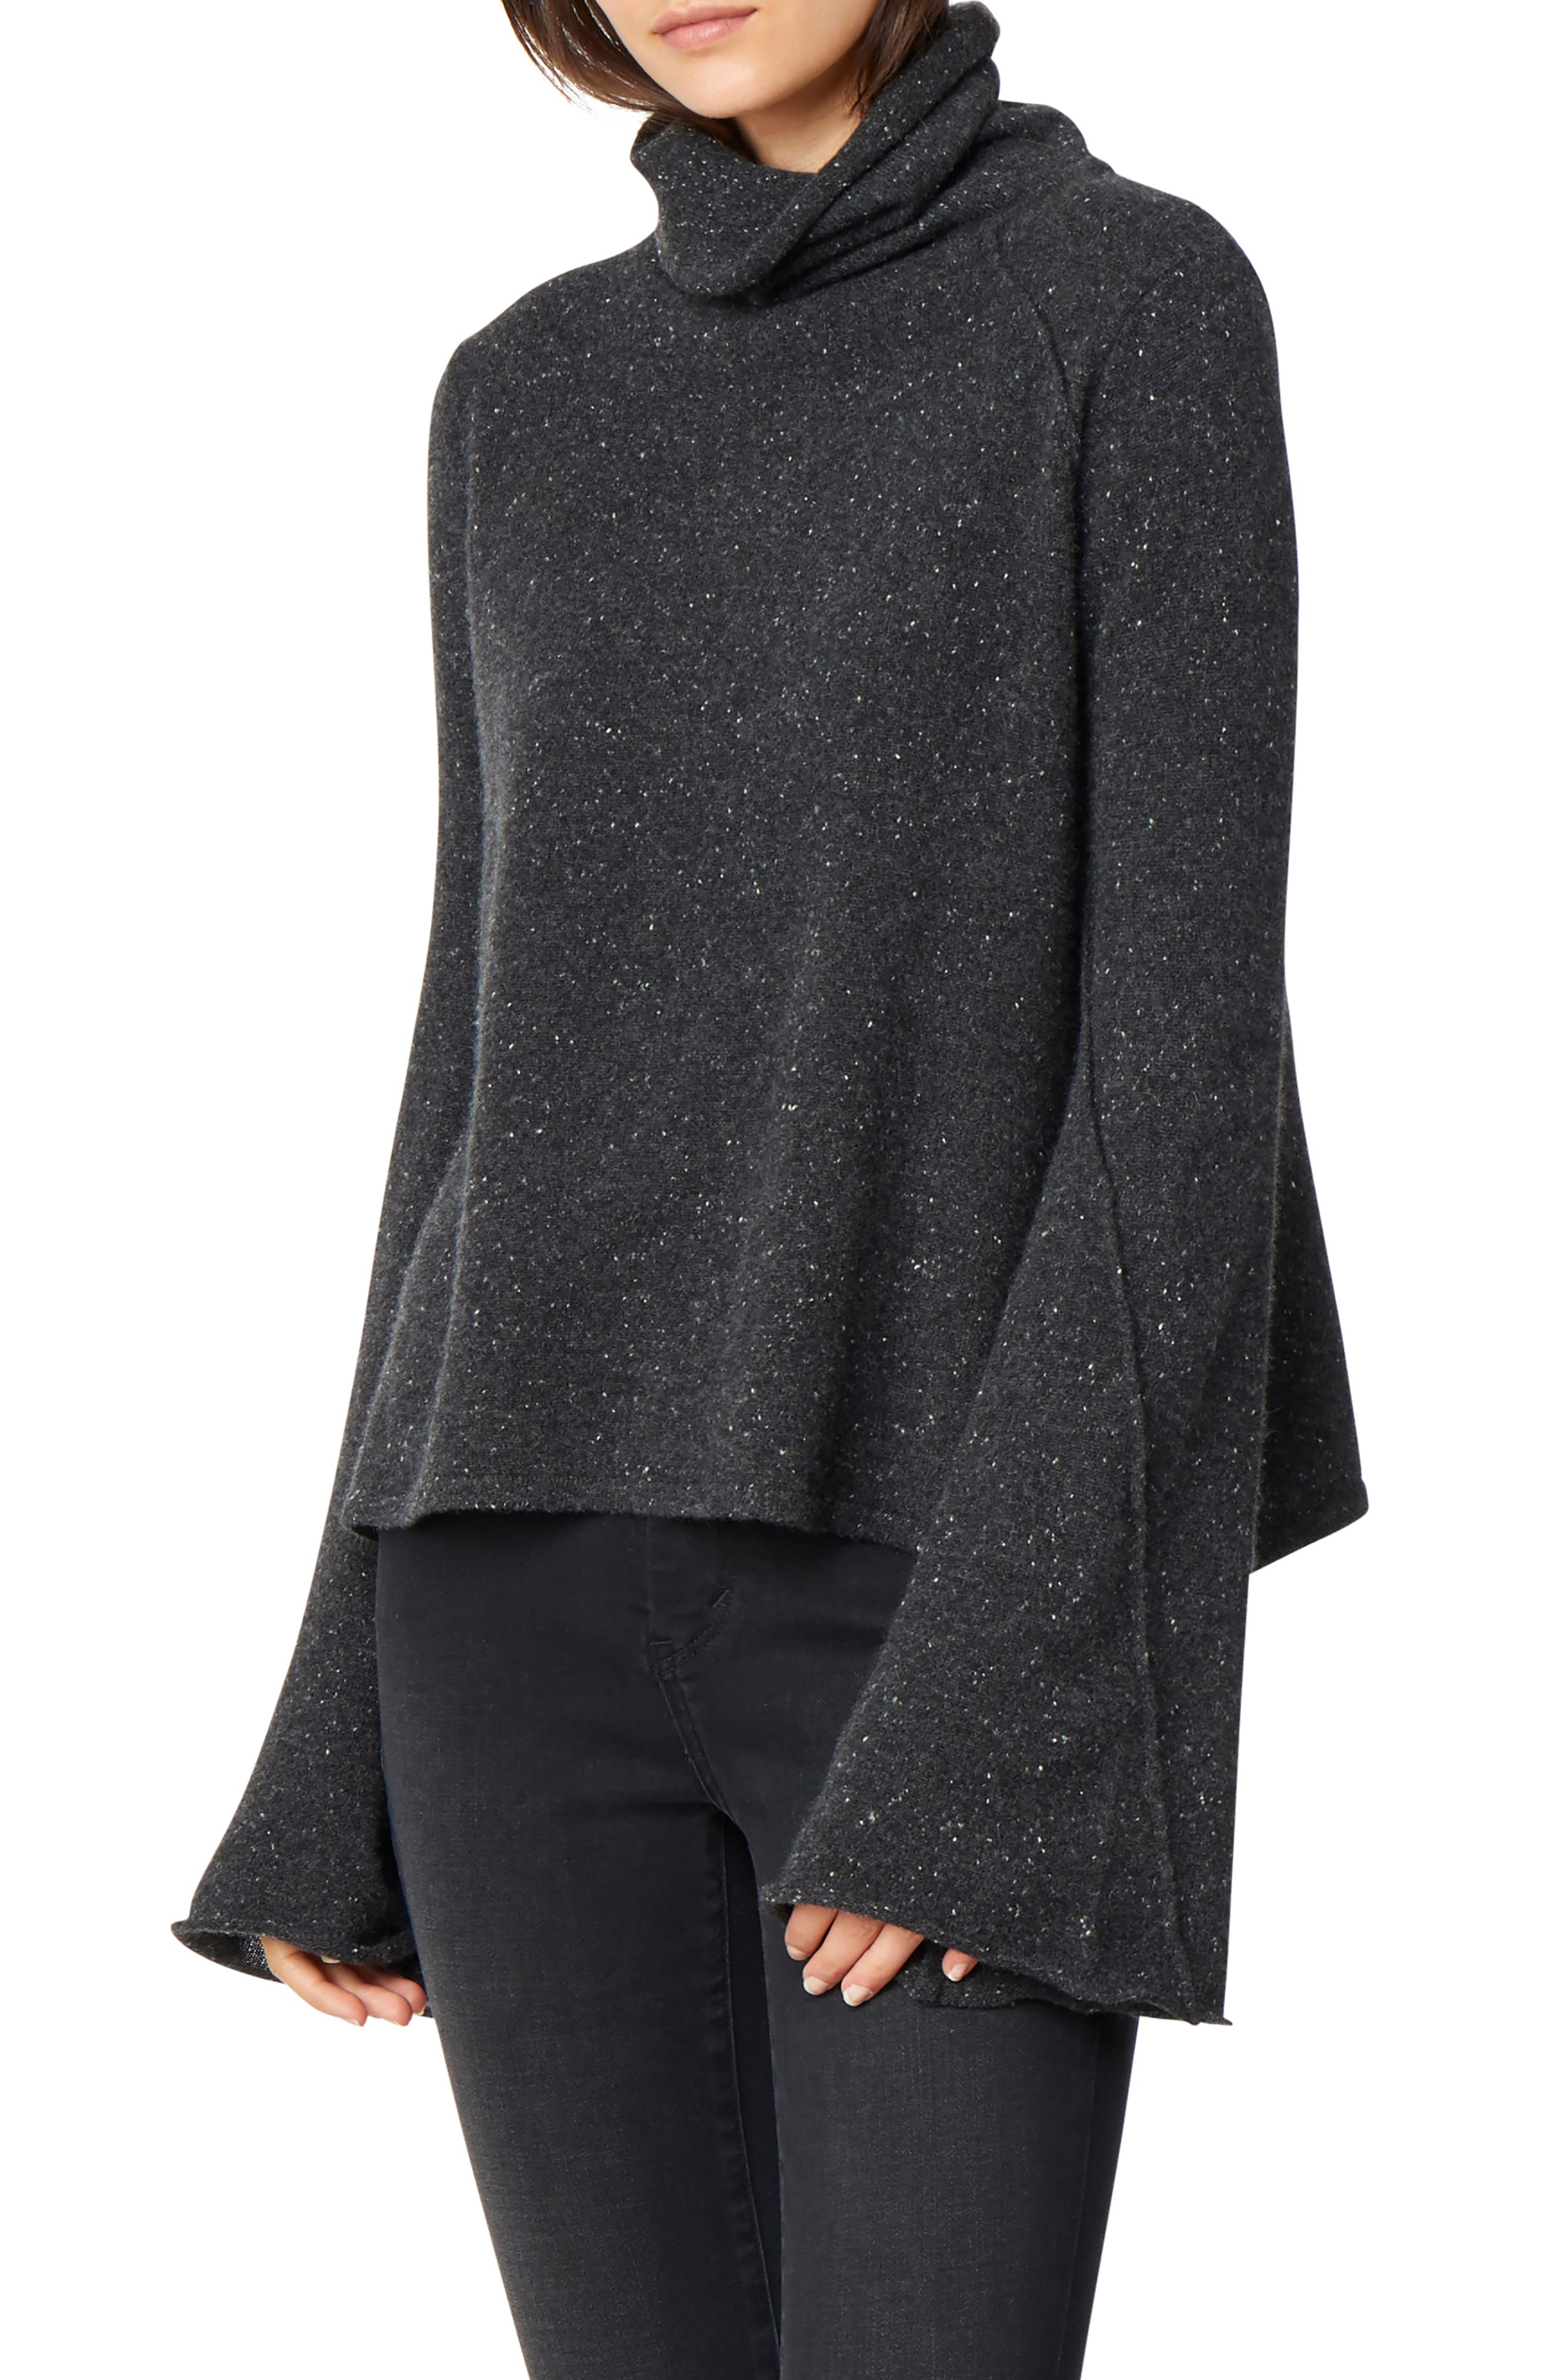 HABITUAL Adalyn Oversize Bell Sleeve Cashmere Sweater, Main, color, 001